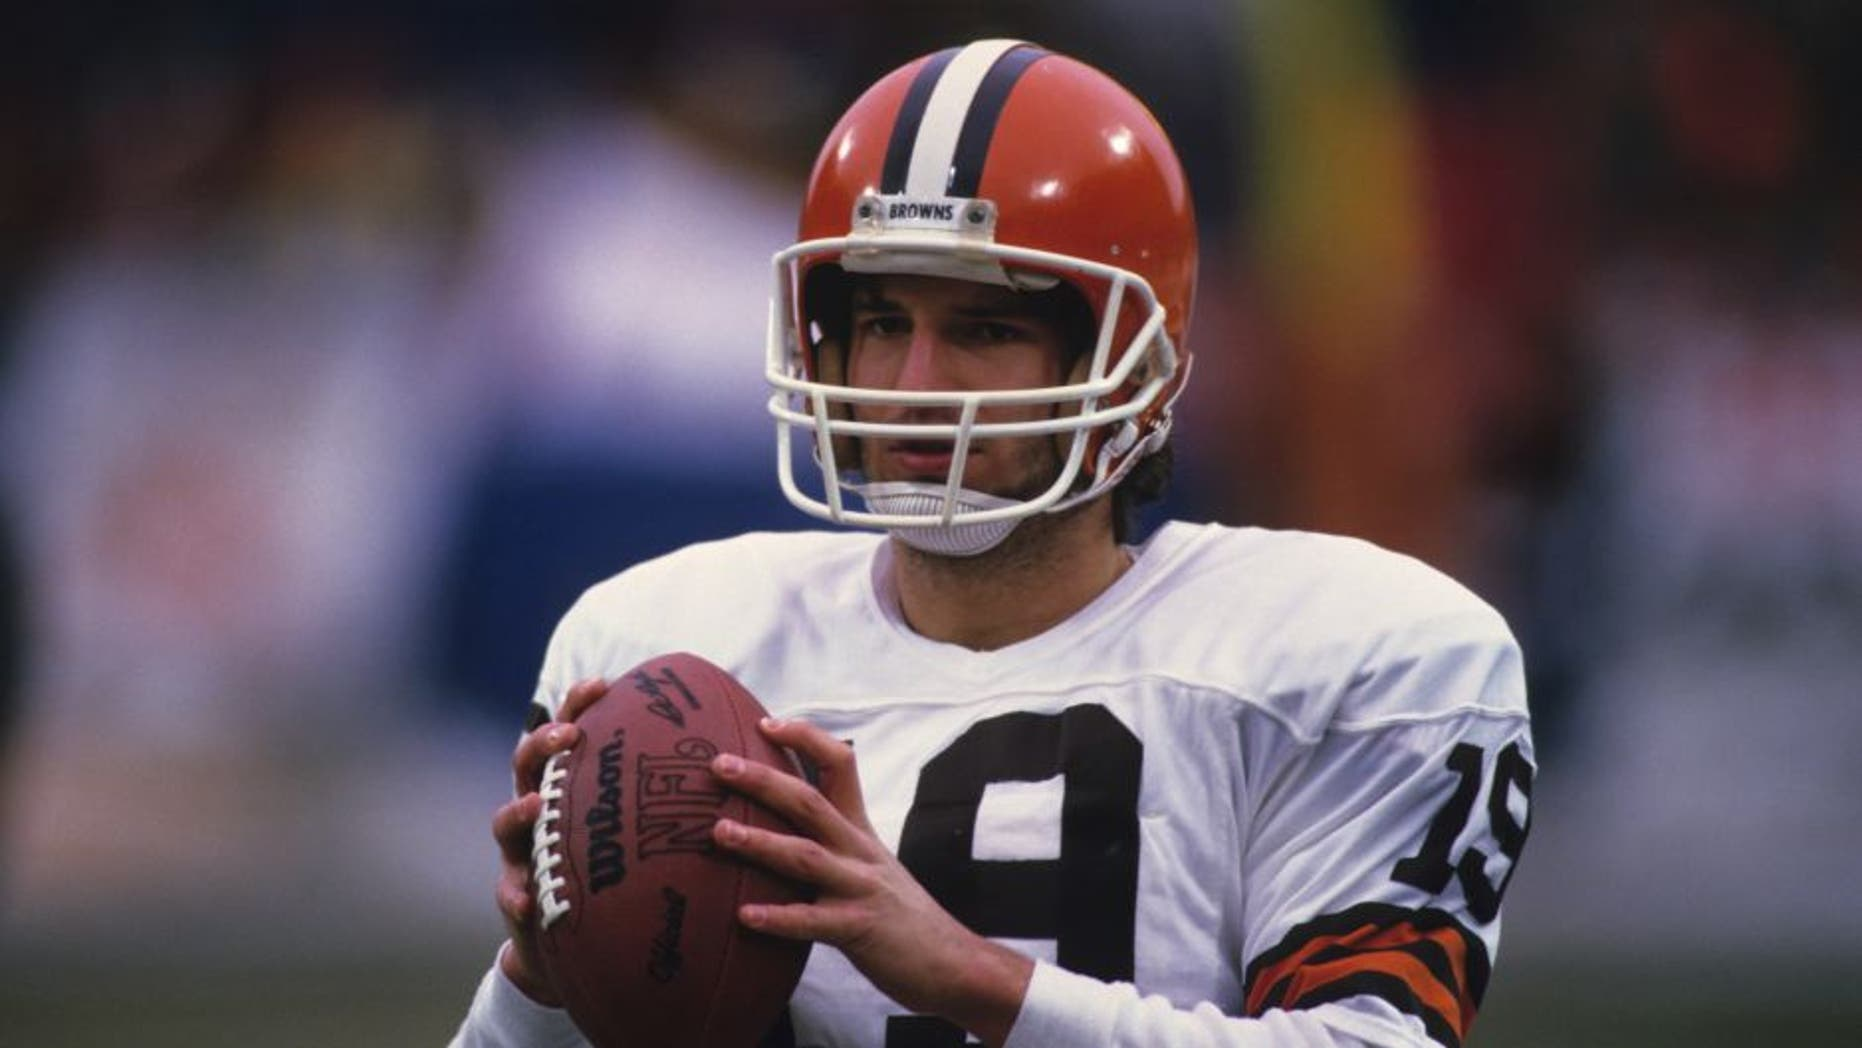 CLEVELAND - 1985: Quarterback Bernie Kosar of the Cleveland Browns looks on from the field before a National Football League game at Municipal Stadium circa 1985 in Cleveland, Ohio. (Photo by George Gojkovich/Getty Images) *** Local Caption *** Bernie Kosar;